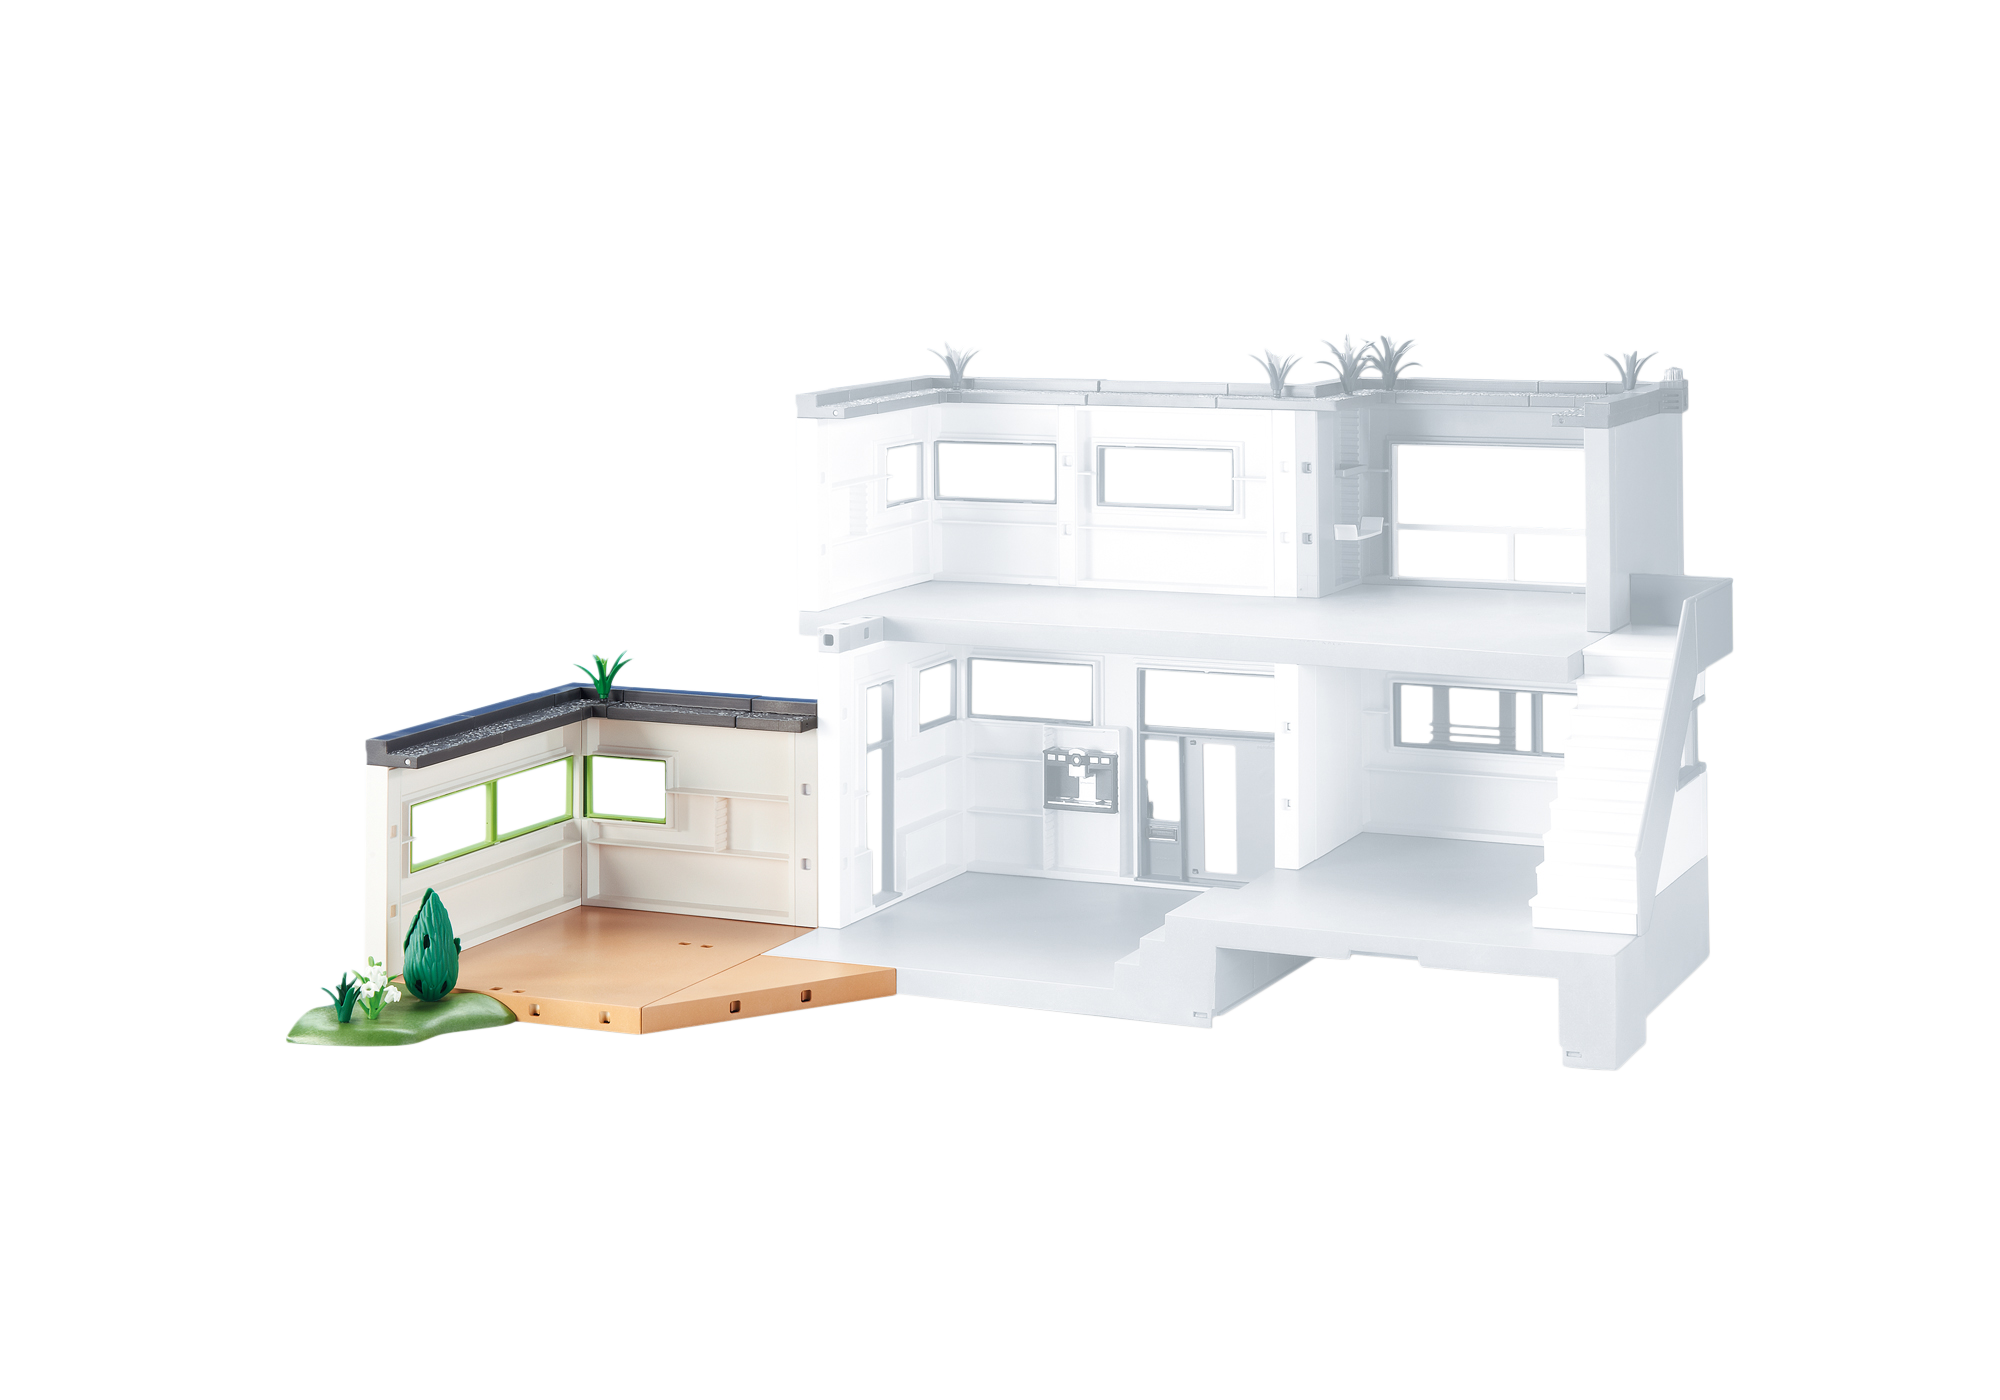 http://media.playmobil.com/i/playmobil/6389_product_detail/Camera addizionale Lussuosa Villa Moderna